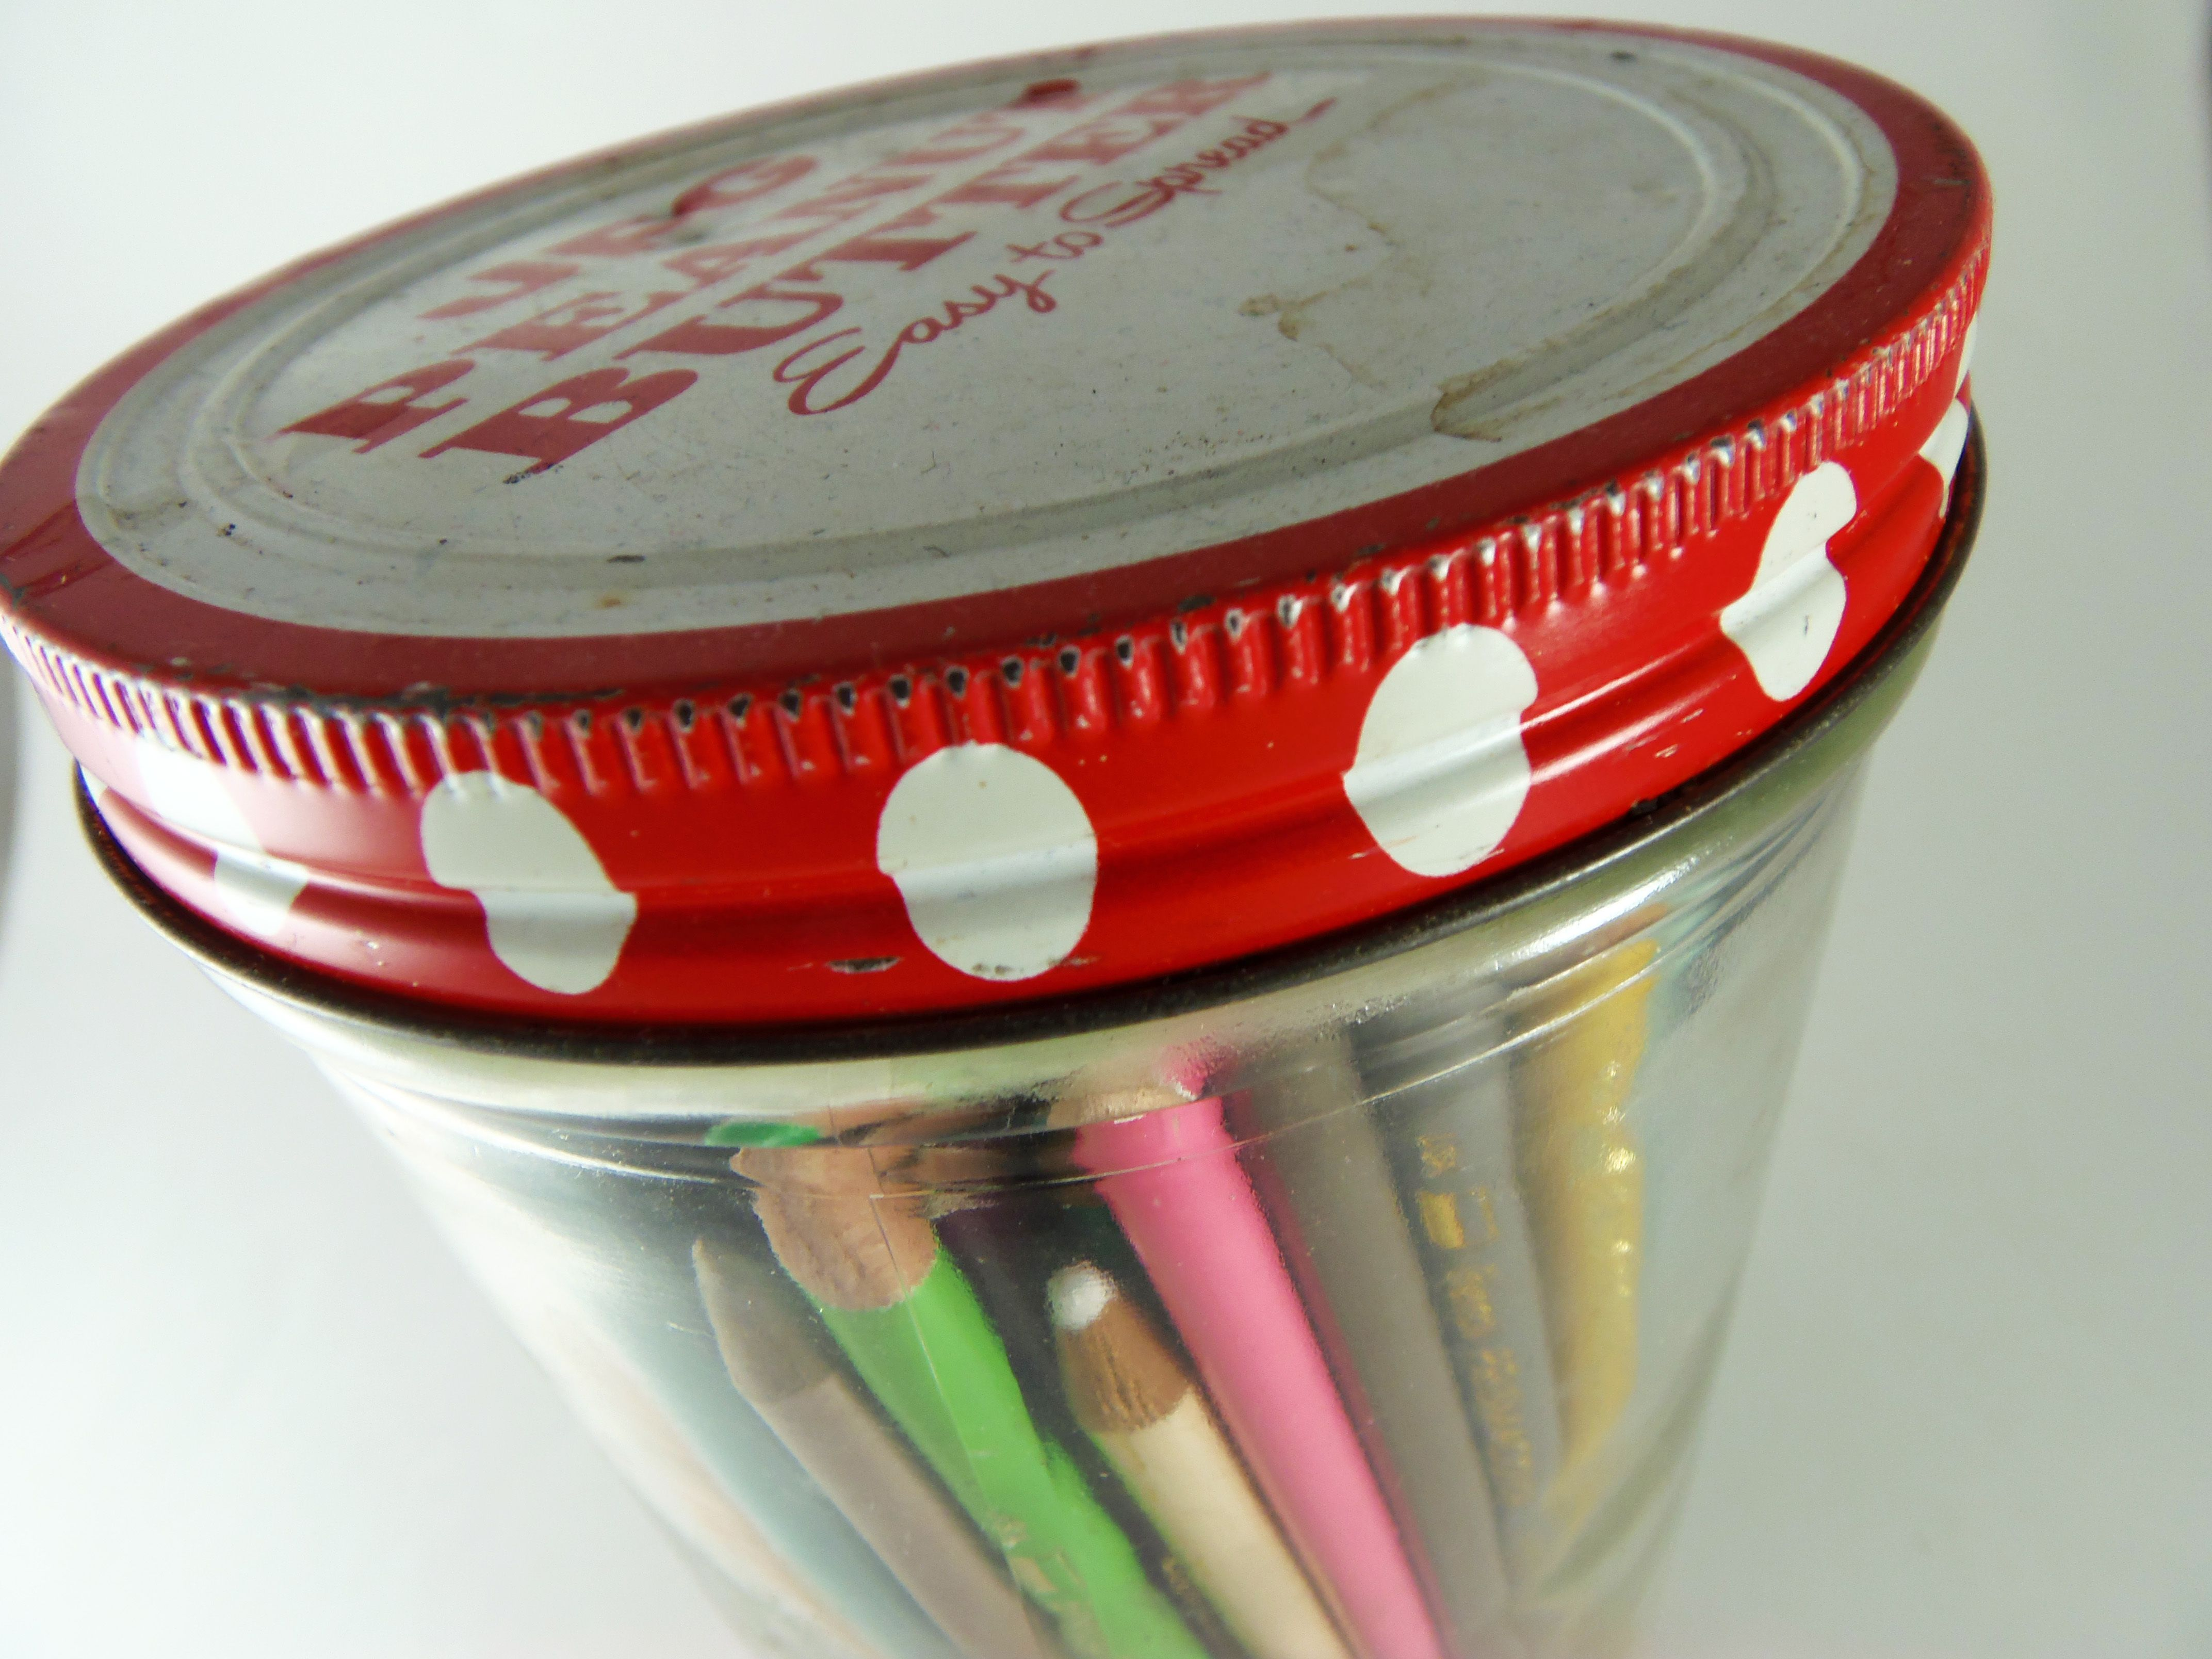 Colored pencils stored in jar